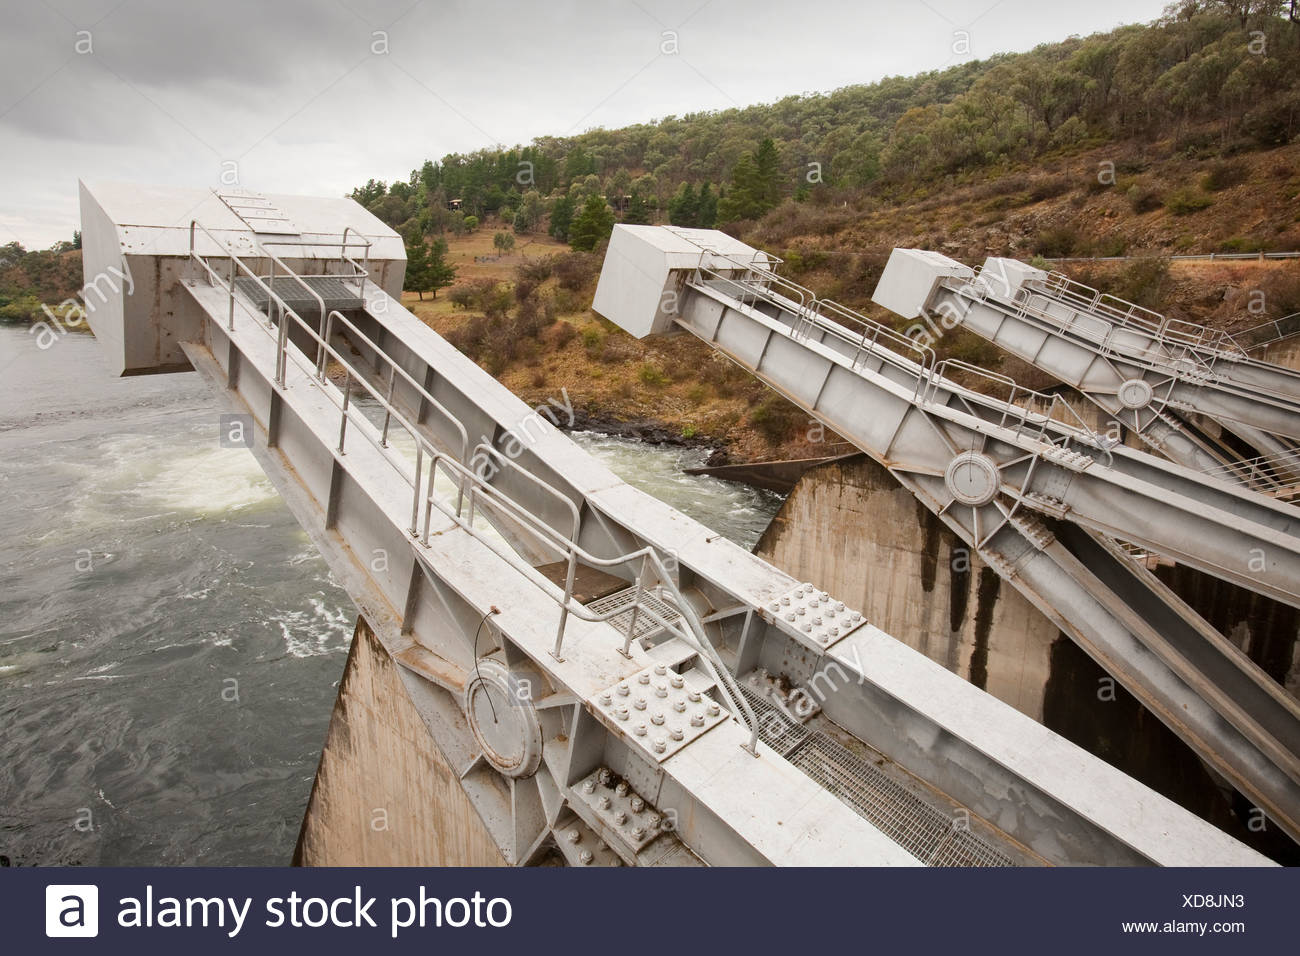 Khancoban dam, part of the Snowy Mountains Hydro scheme in New South Wales, Australia. - Stock Image